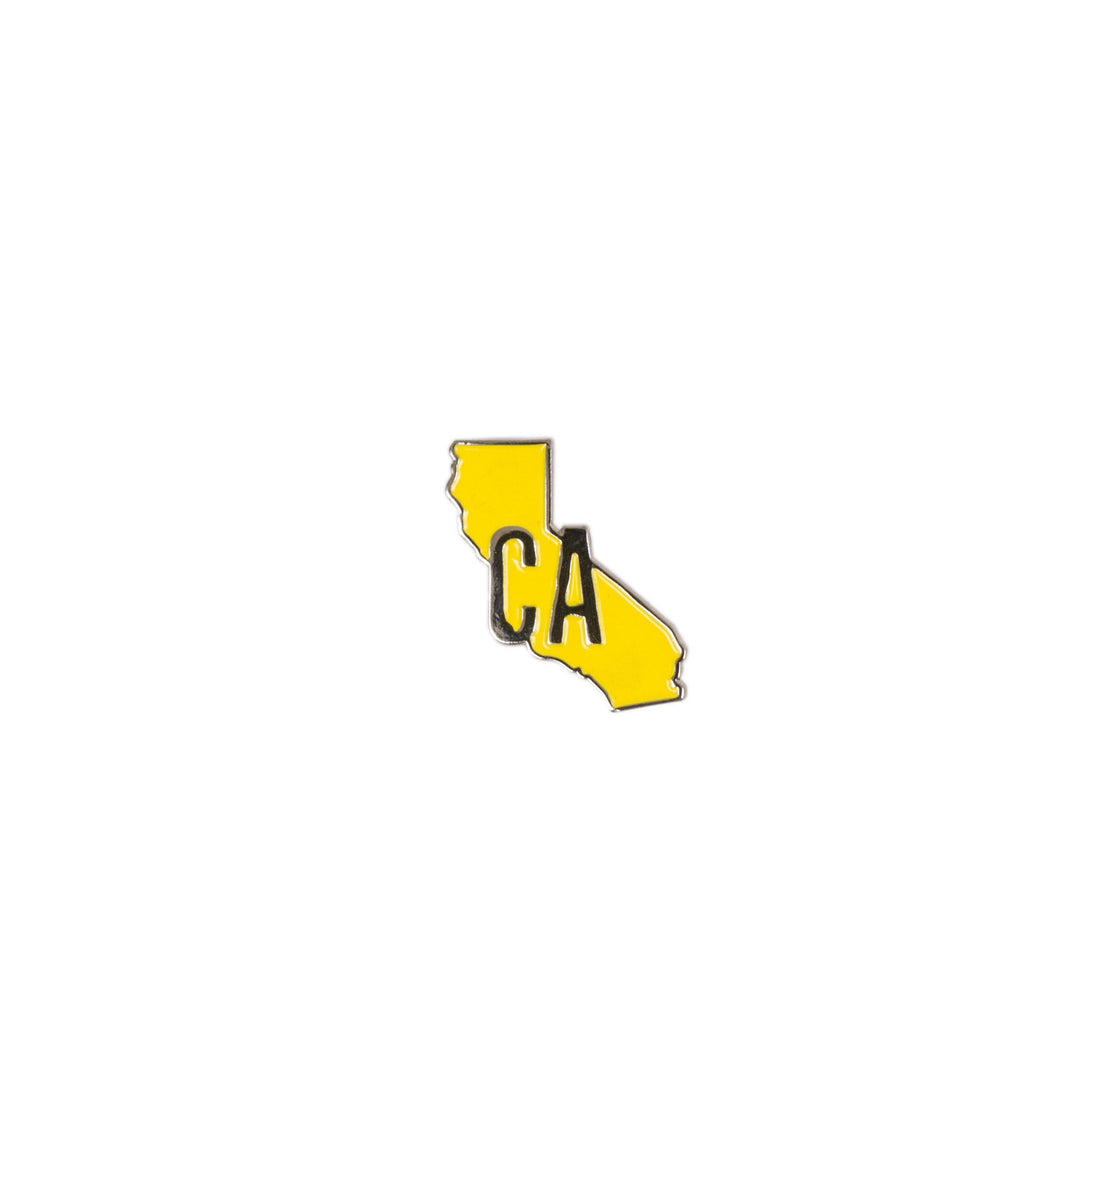 CA Outline Enamel Pin, Yellow - Stickers/Pins/Patches - Iron and Resin